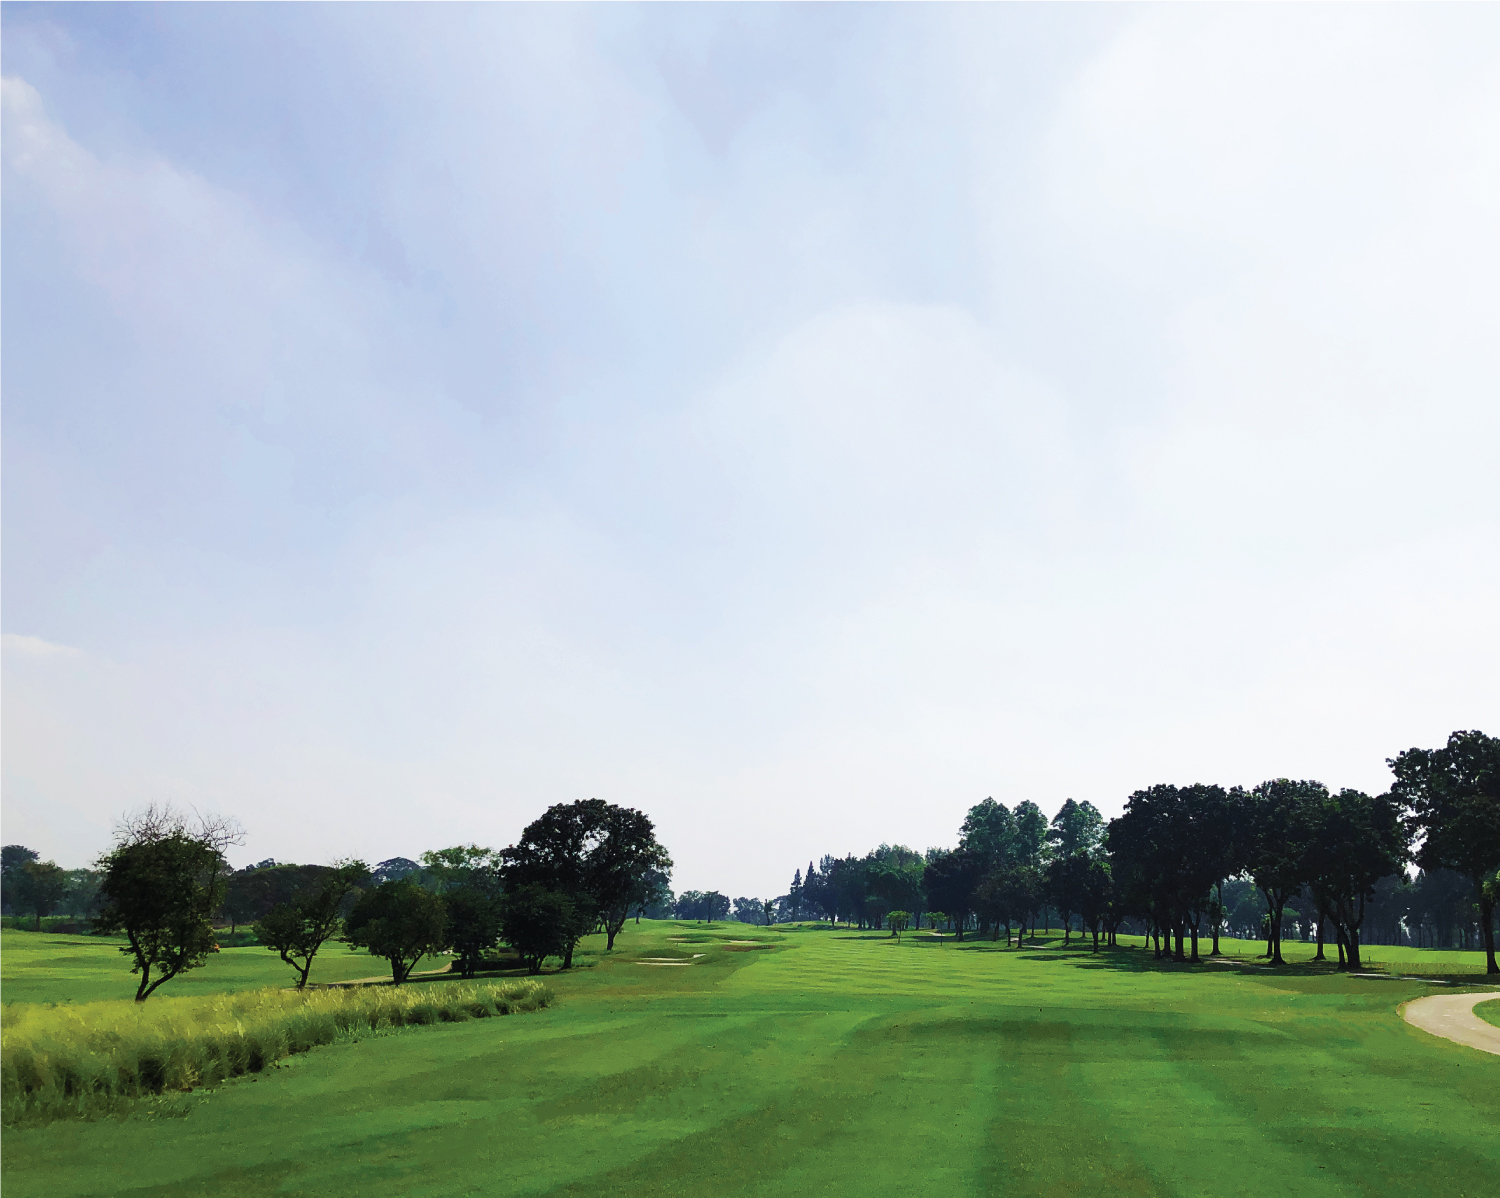 GOLF-COURSE-2-GREEN-COURSE